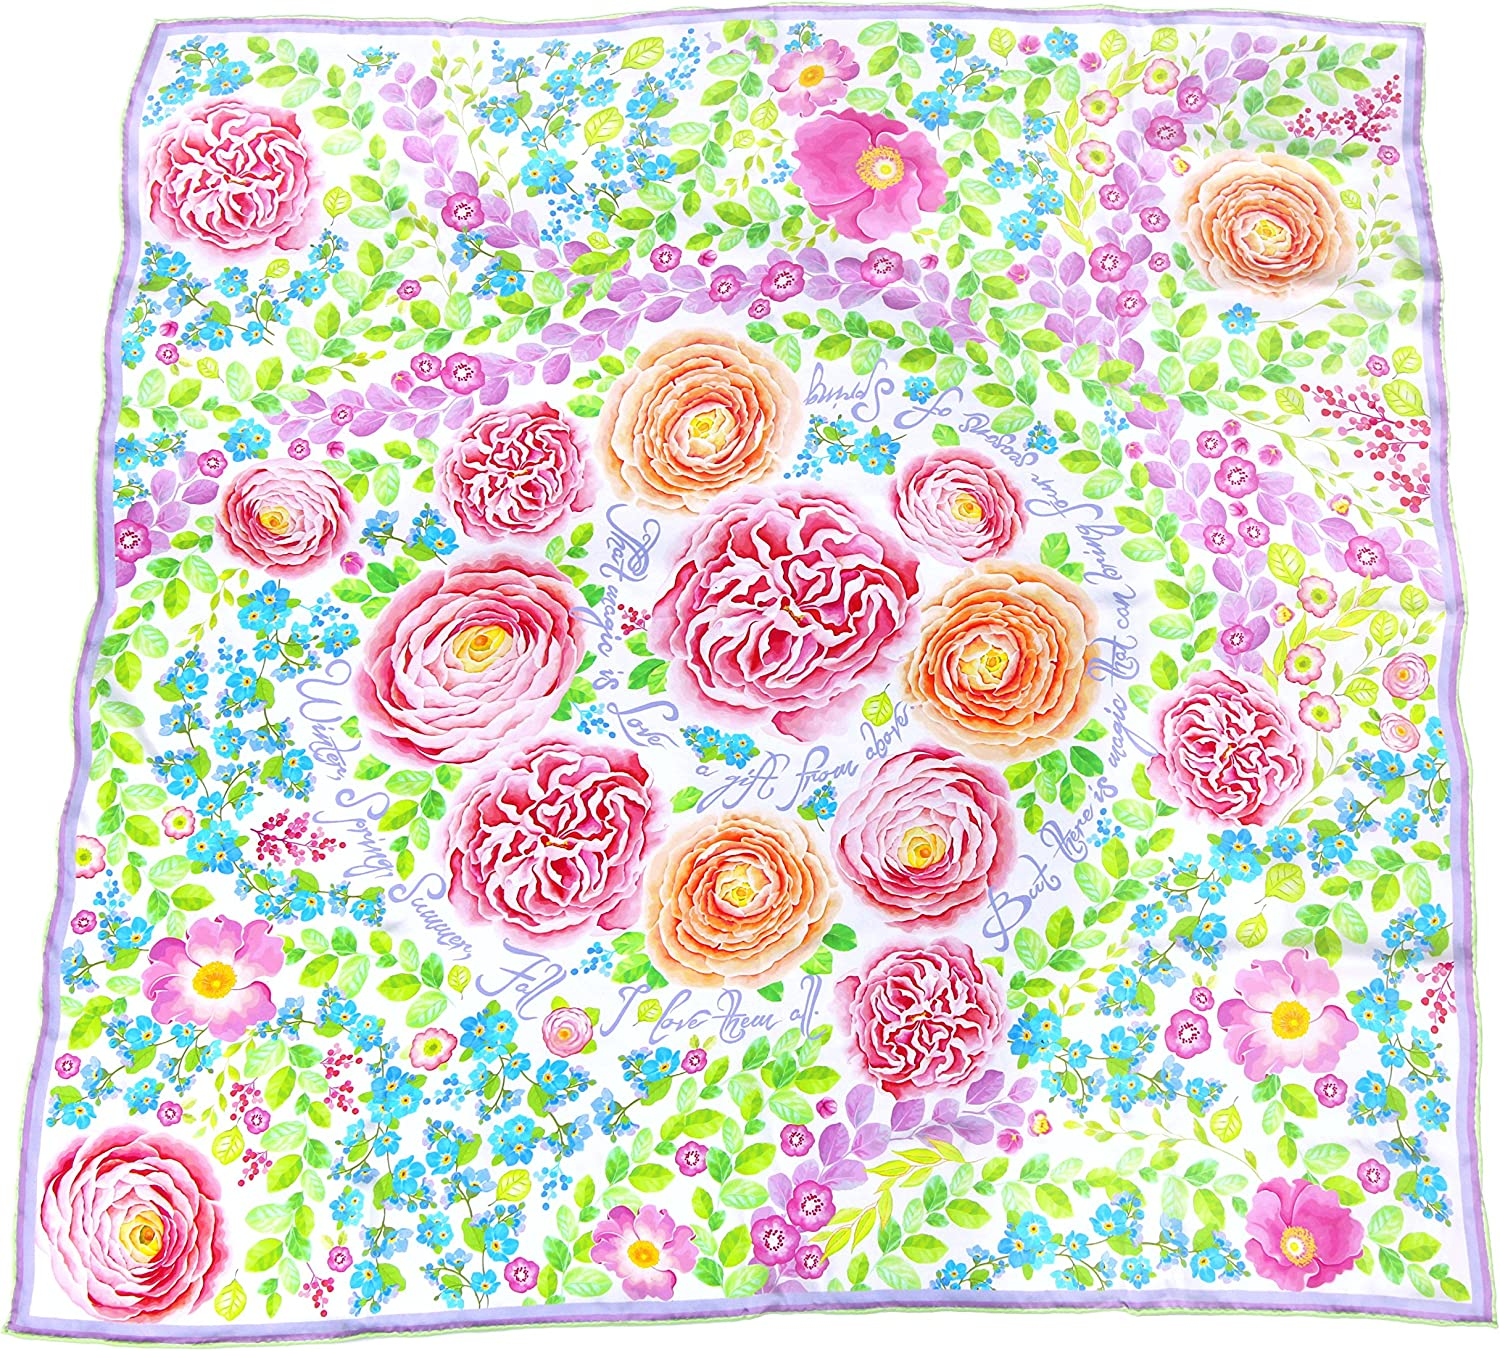 100% silk square scarf white pink floral wrap 4 Seasons of Spring   pure silk inspirational gift scarves